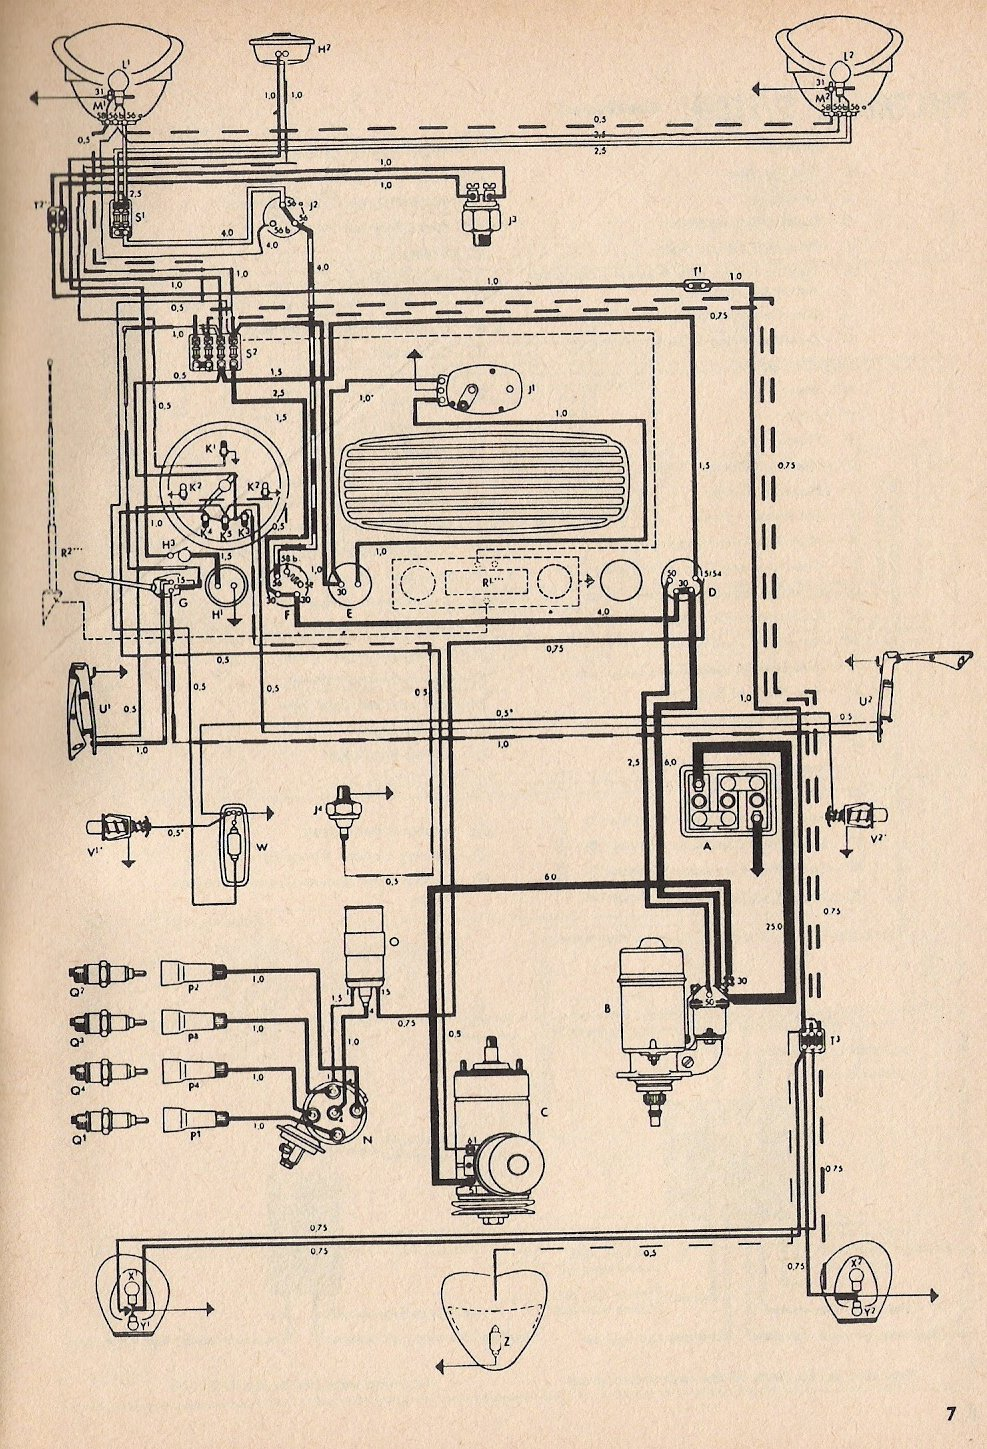 bug_54 1954 beetle wiring diagram thegoldenbug com 1973 super beetle wiring harness at nearapp.co